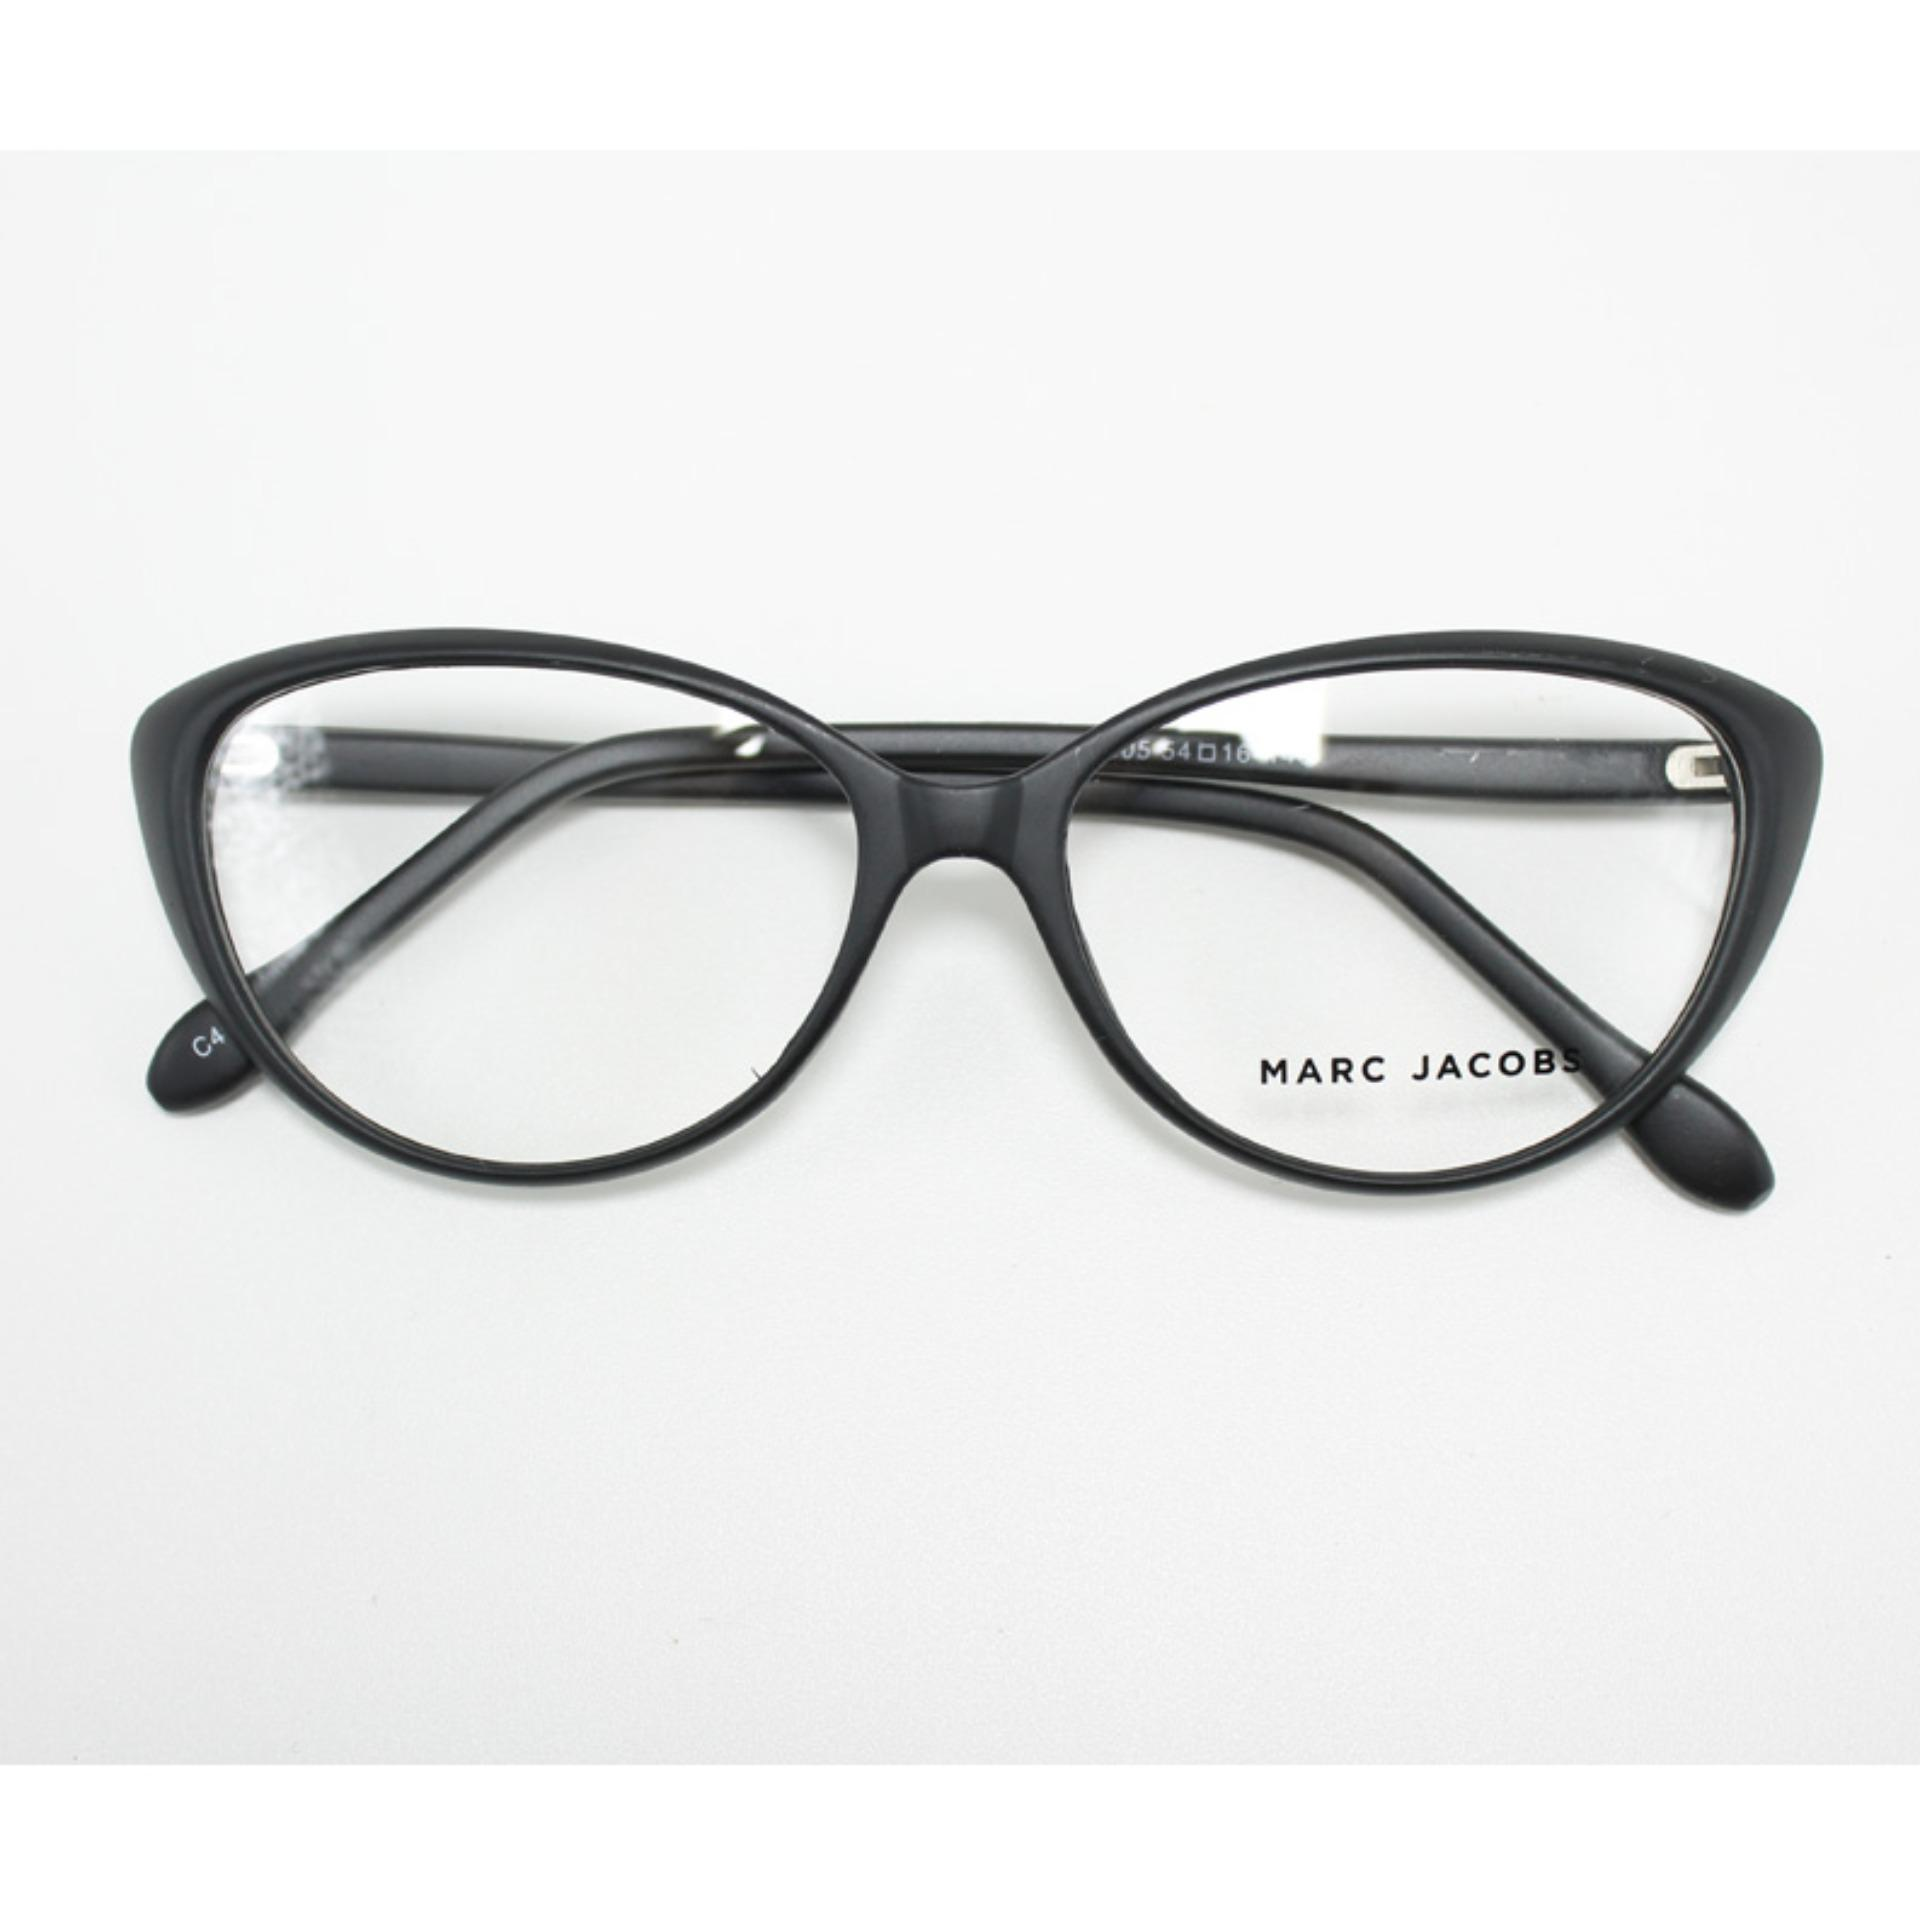 Kacamata Pria Wanita Frame Eyeglasses Retro Style Black Cat Eye Fashion 605